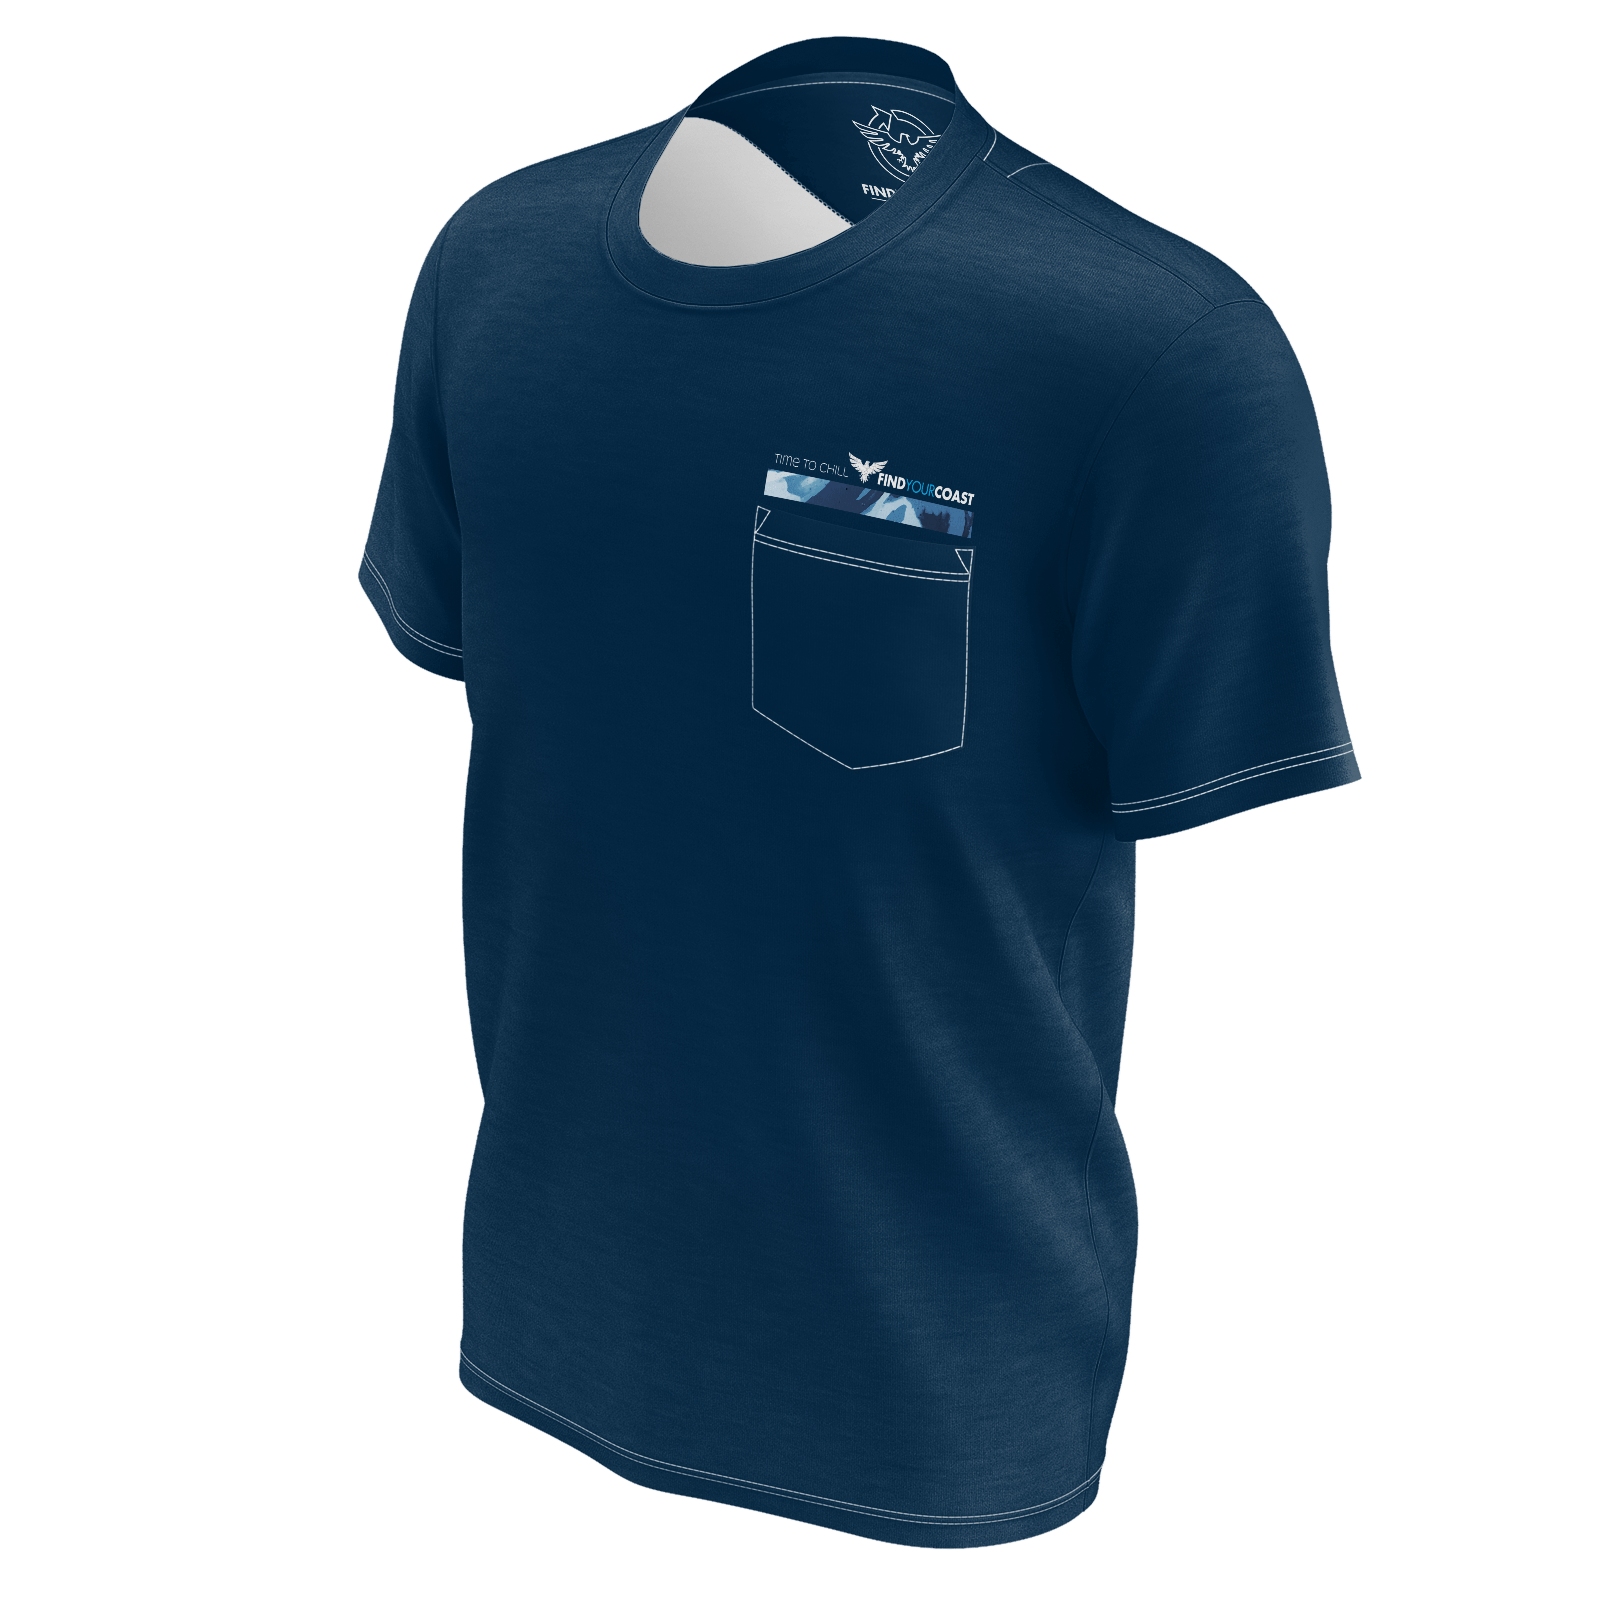 Men's Find Your Coast Time To Chill Sustainable Pocket Tee Shirt - Find Your Coast Supply Co.